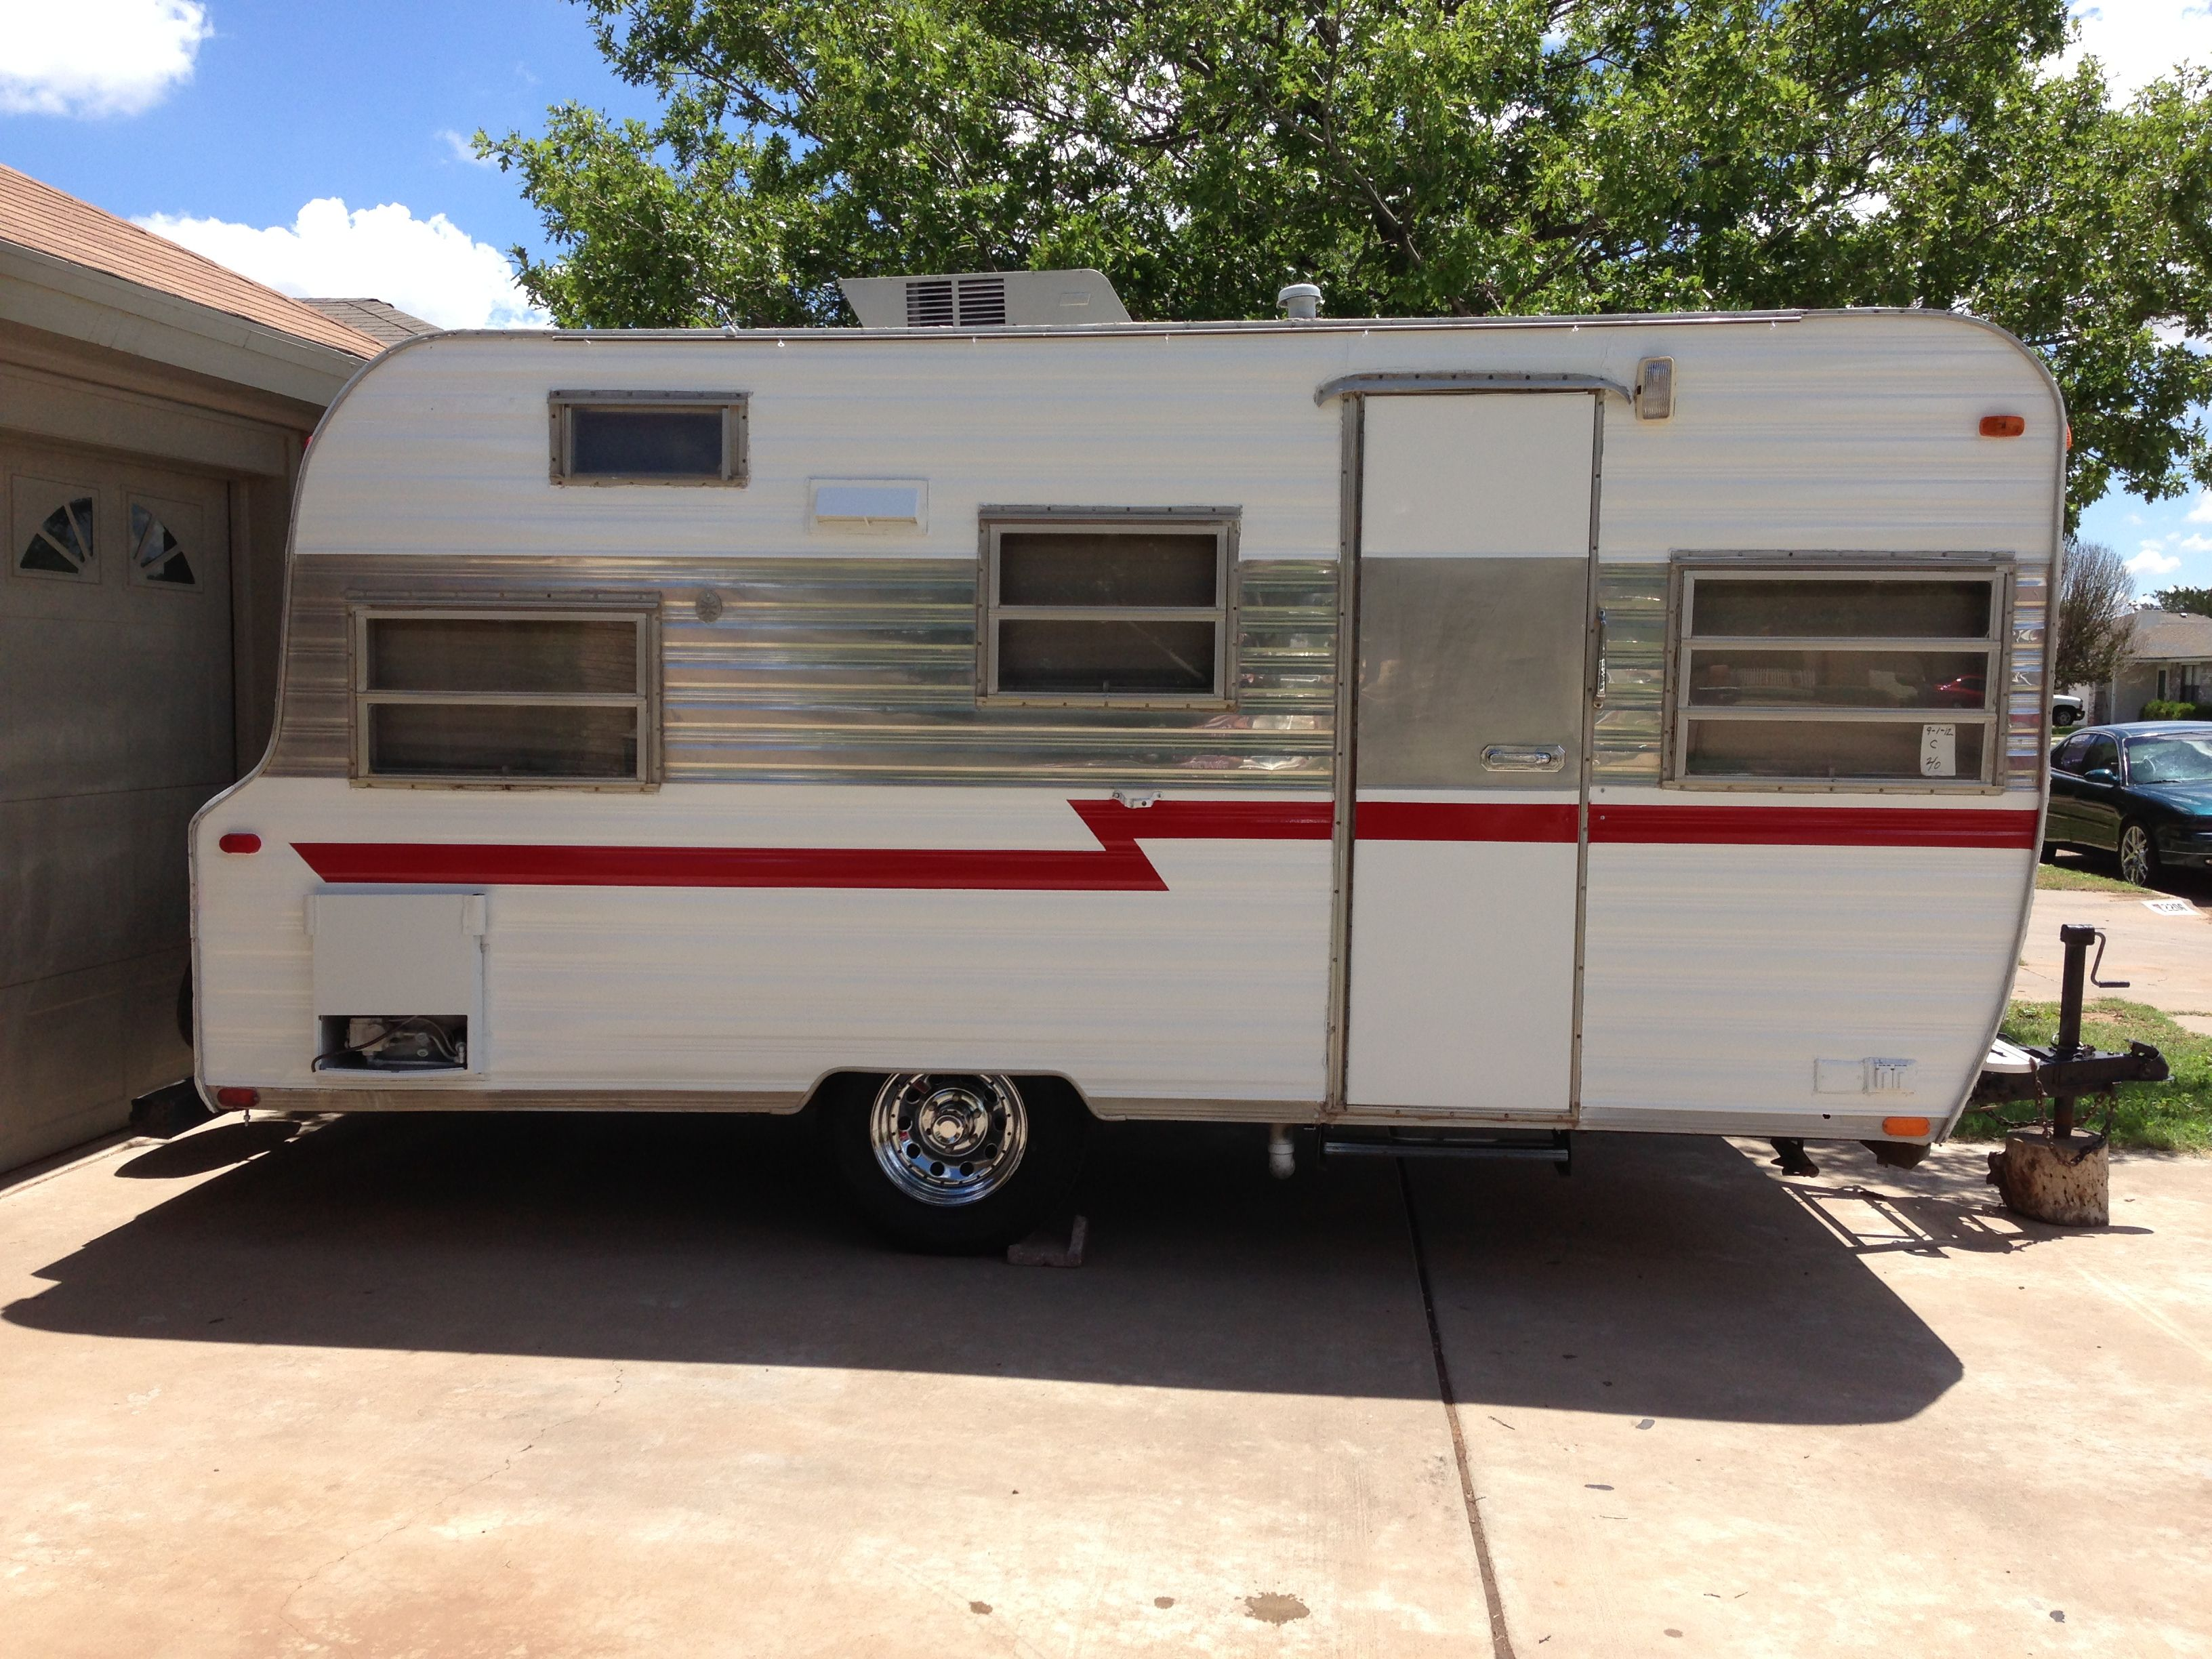 1968 Mobile Scout Moble Scout Pinterest Camping